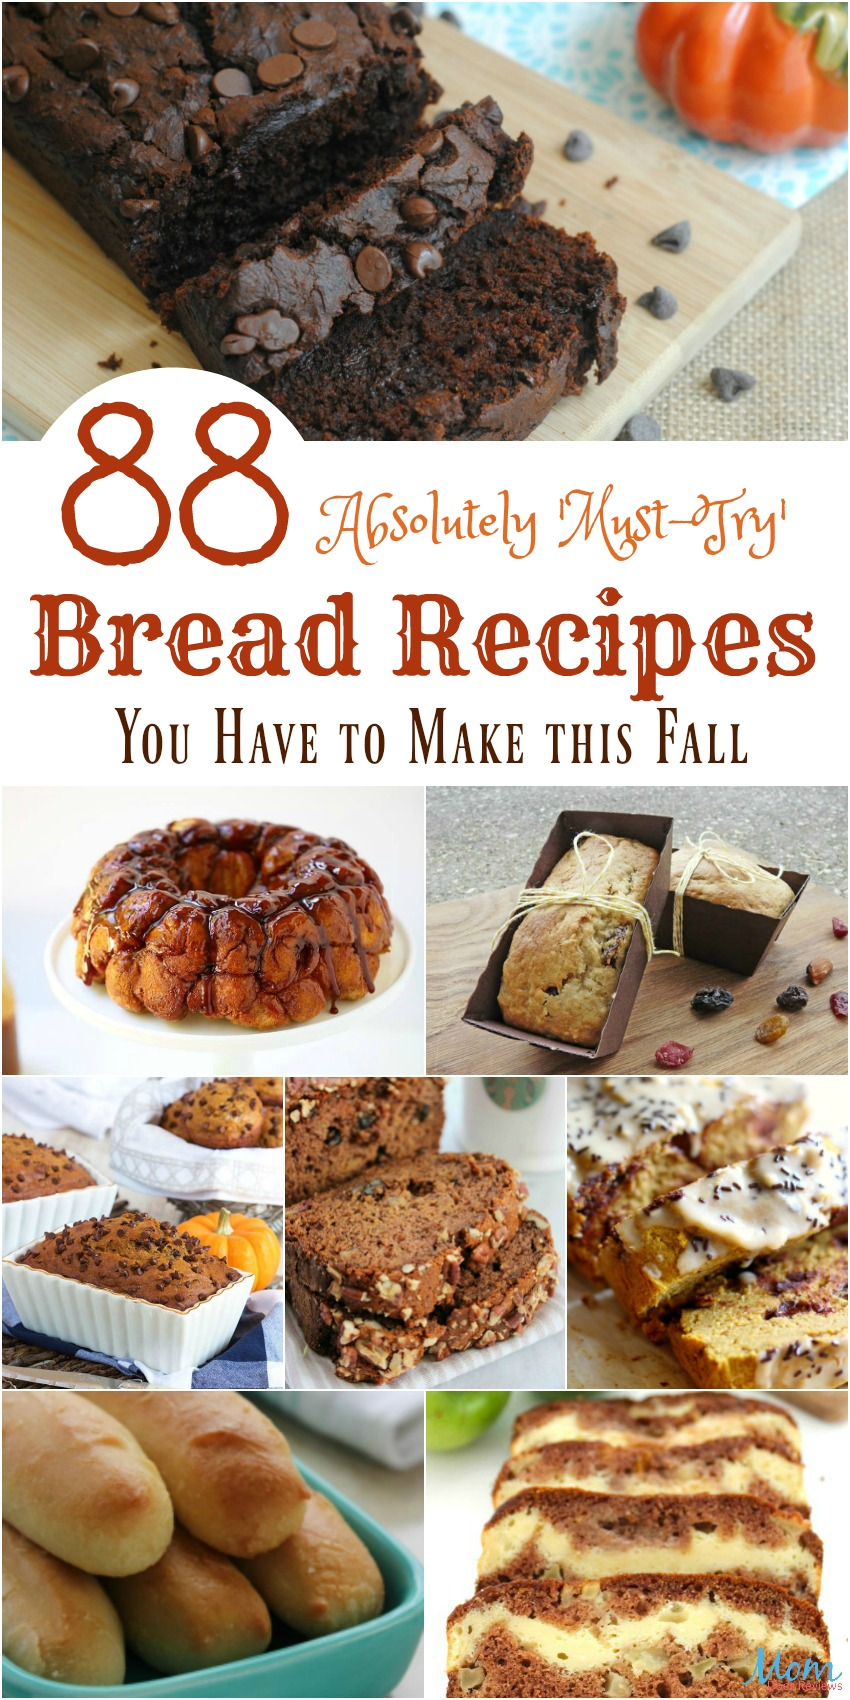 88 Absolutely Must-Try Bread Recipes You Have to Make this Fall